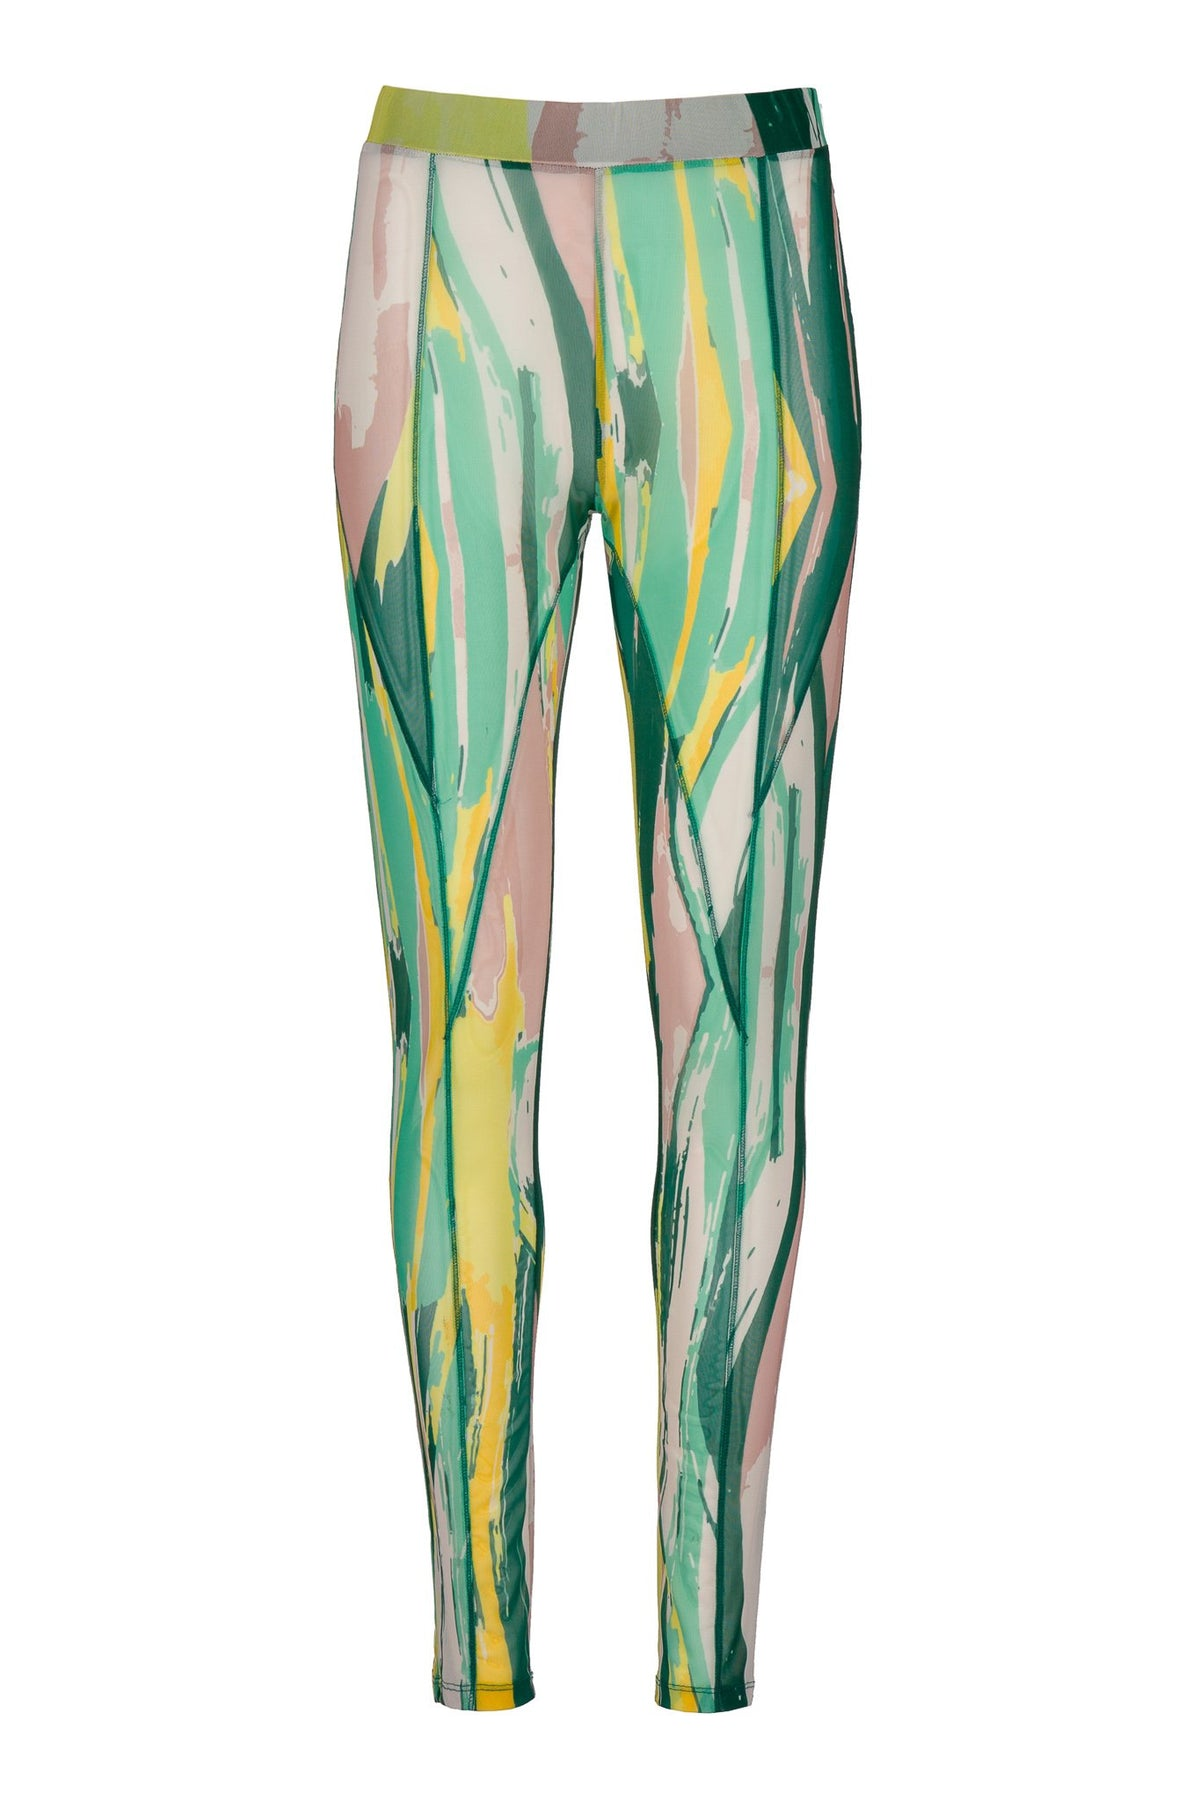 Racing | Trouser | Paint Print